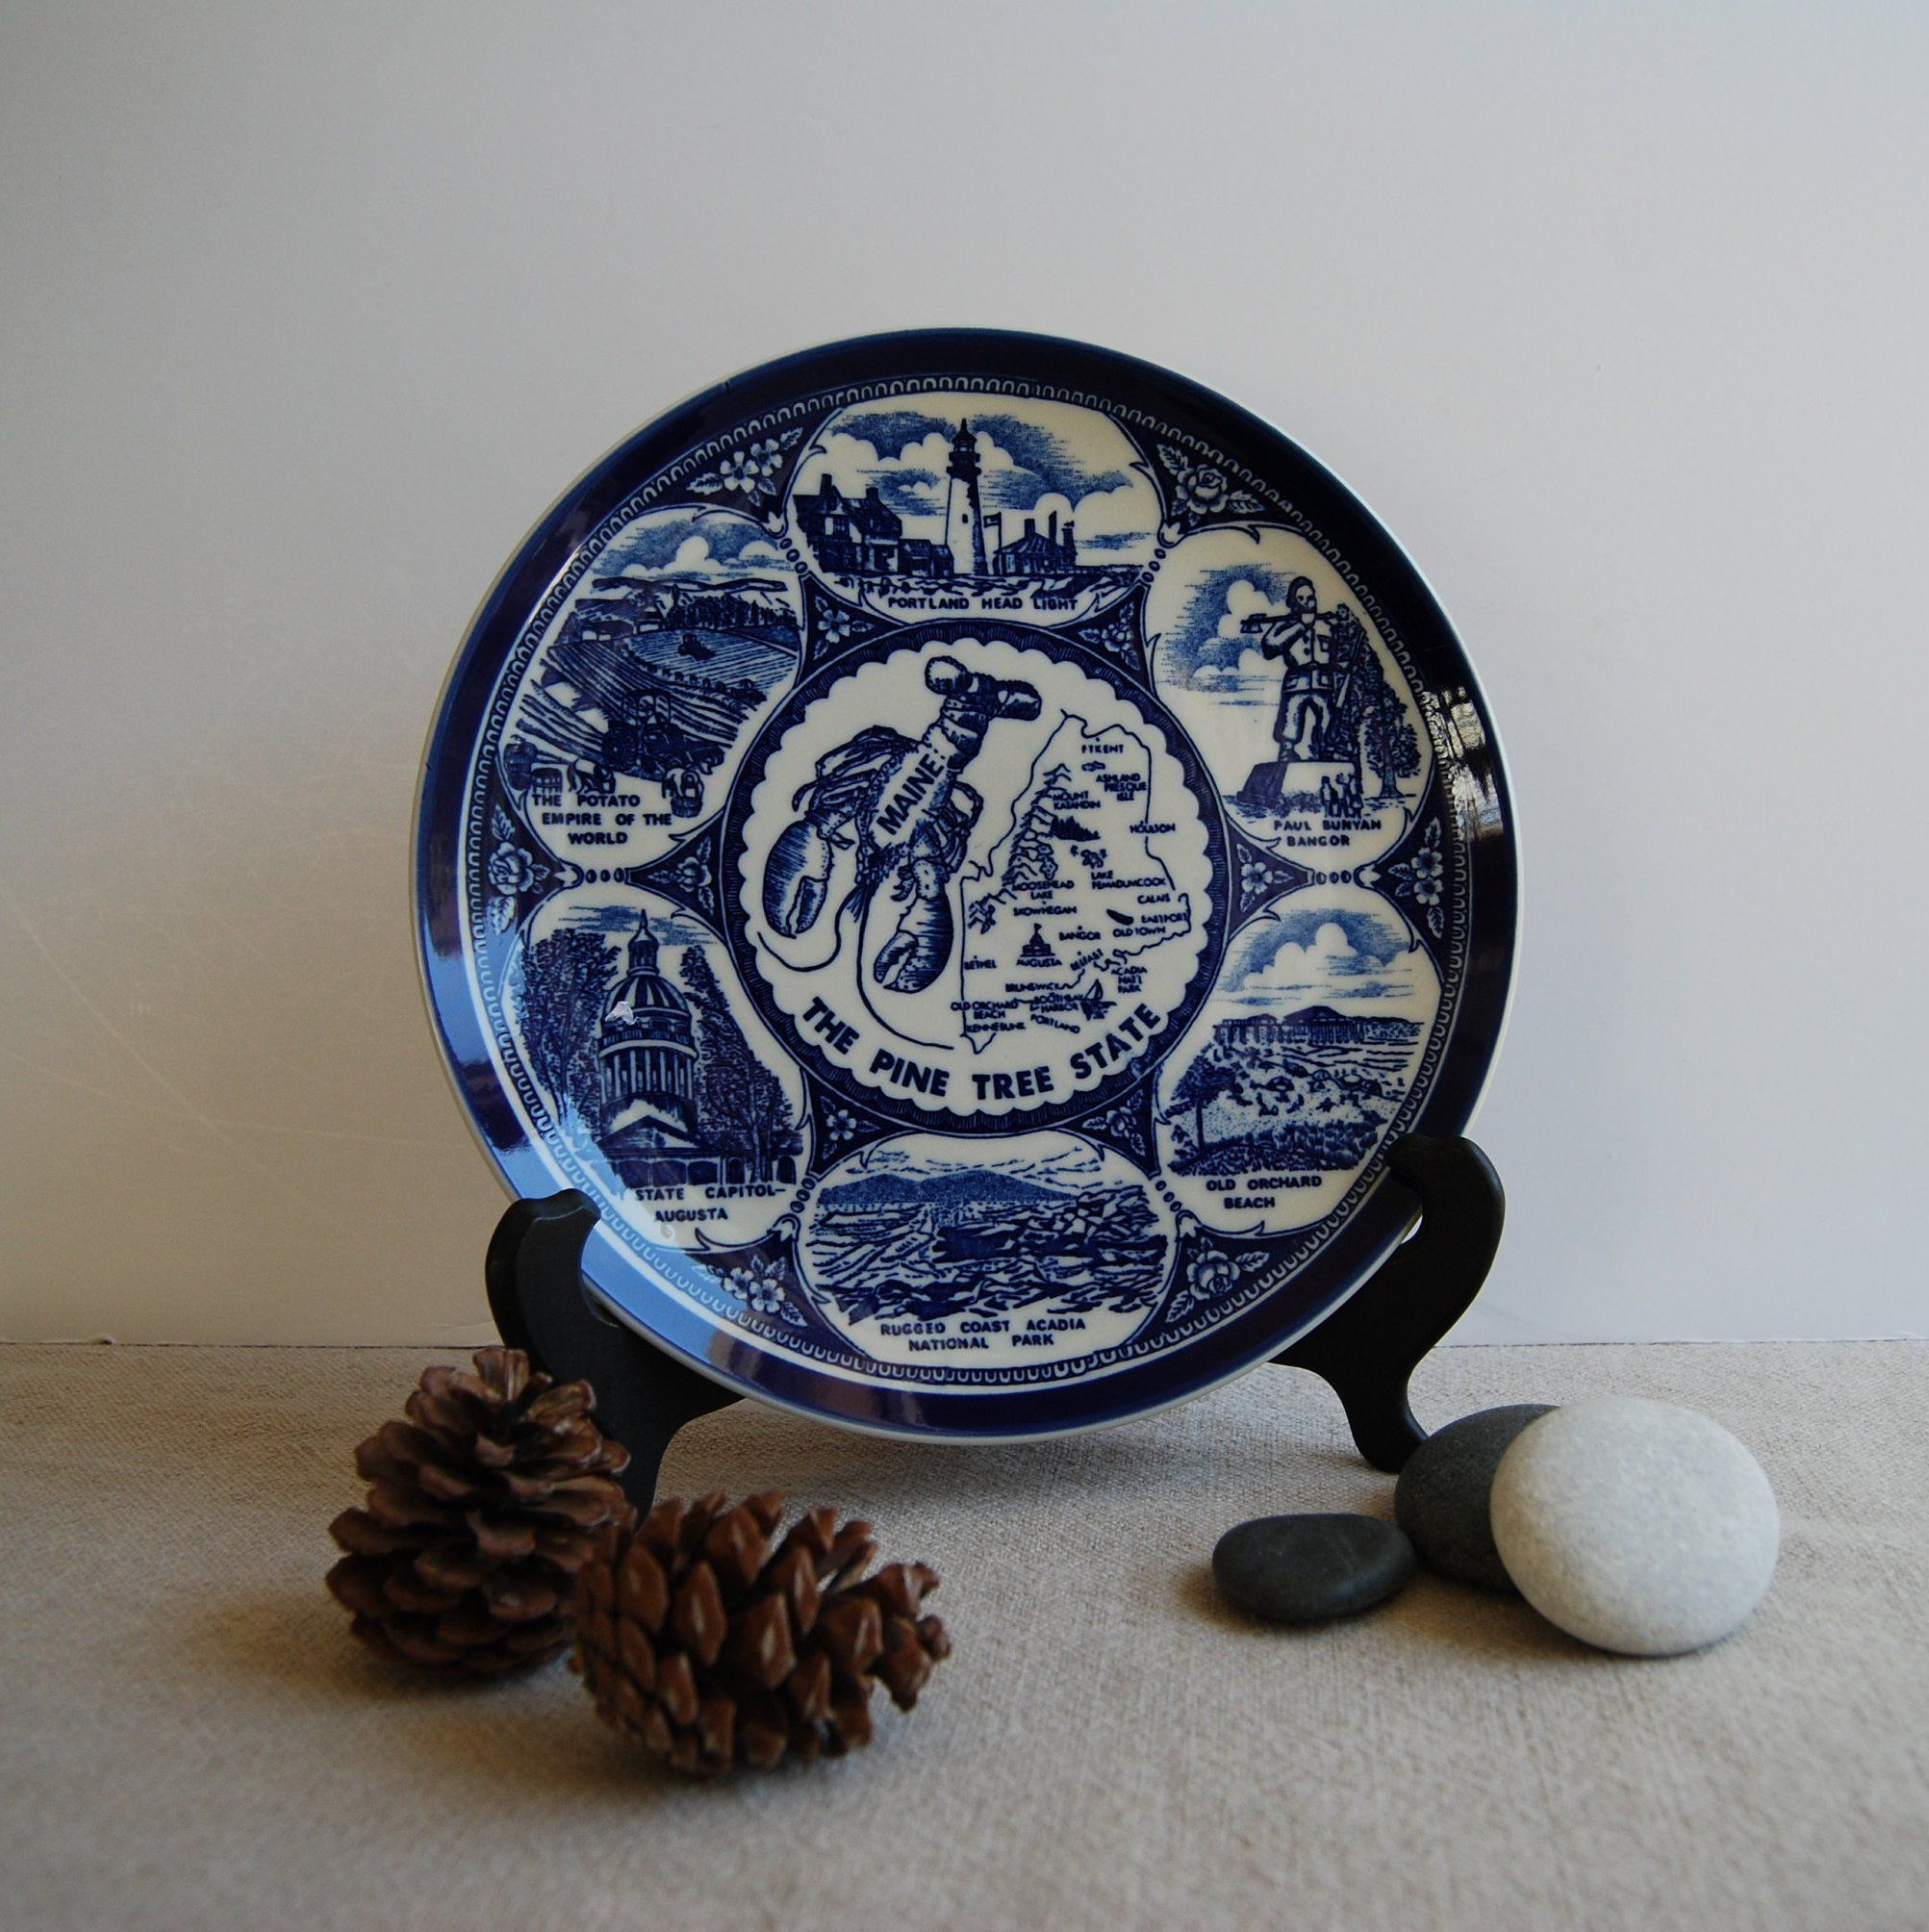 Vintage Maine Souvenir Plate 1950s Blue White State Of Maine Collectible Plate Lobster Plate Souvenir Plates Vintage Souvenir Collectable Plates